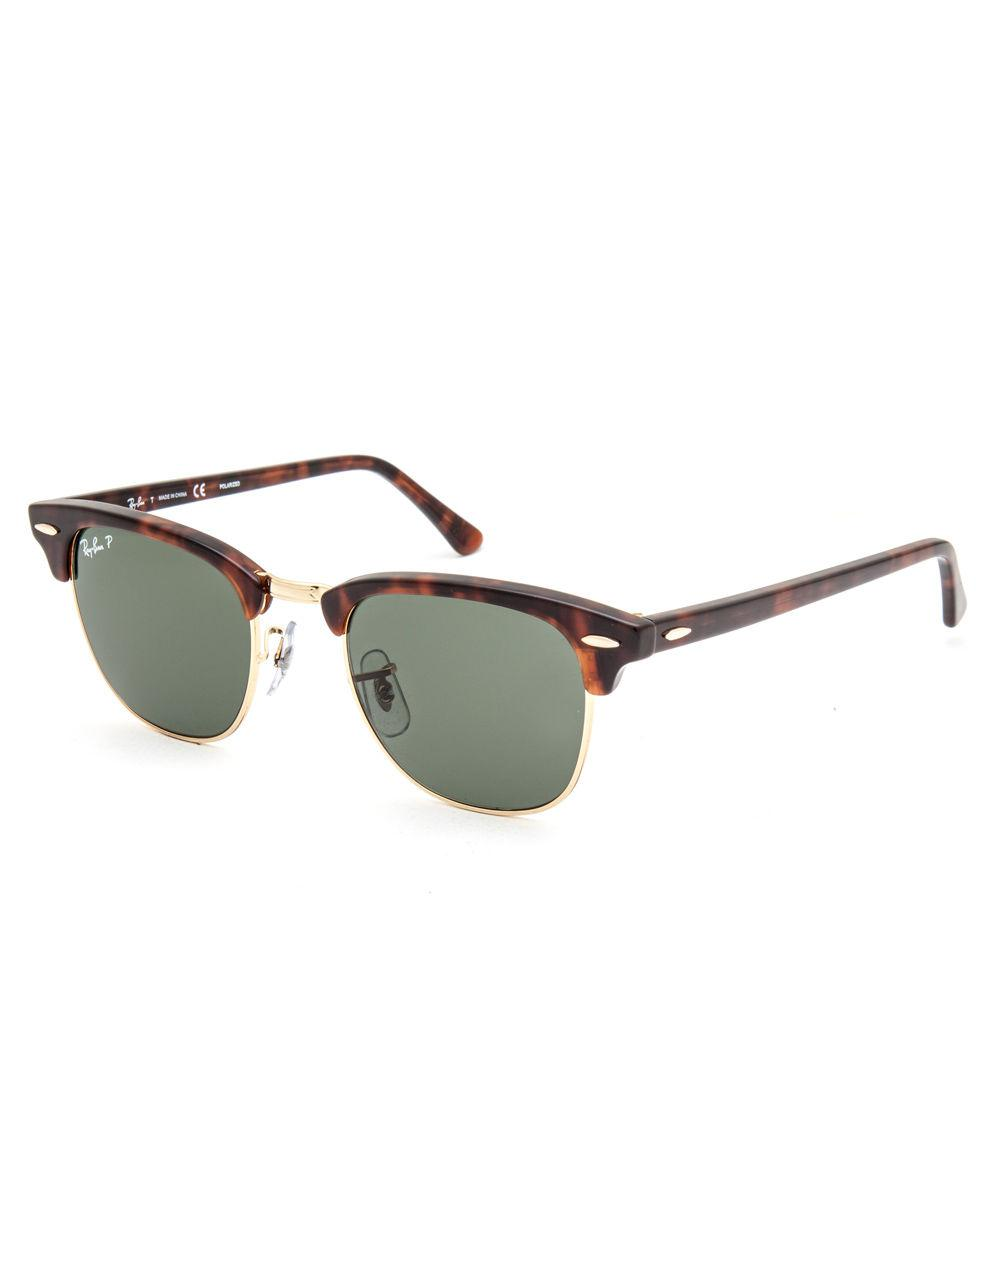 62688a3712 Lyst - Ray-Ban Clubmaster Classic Polarized Sunglasses for Men